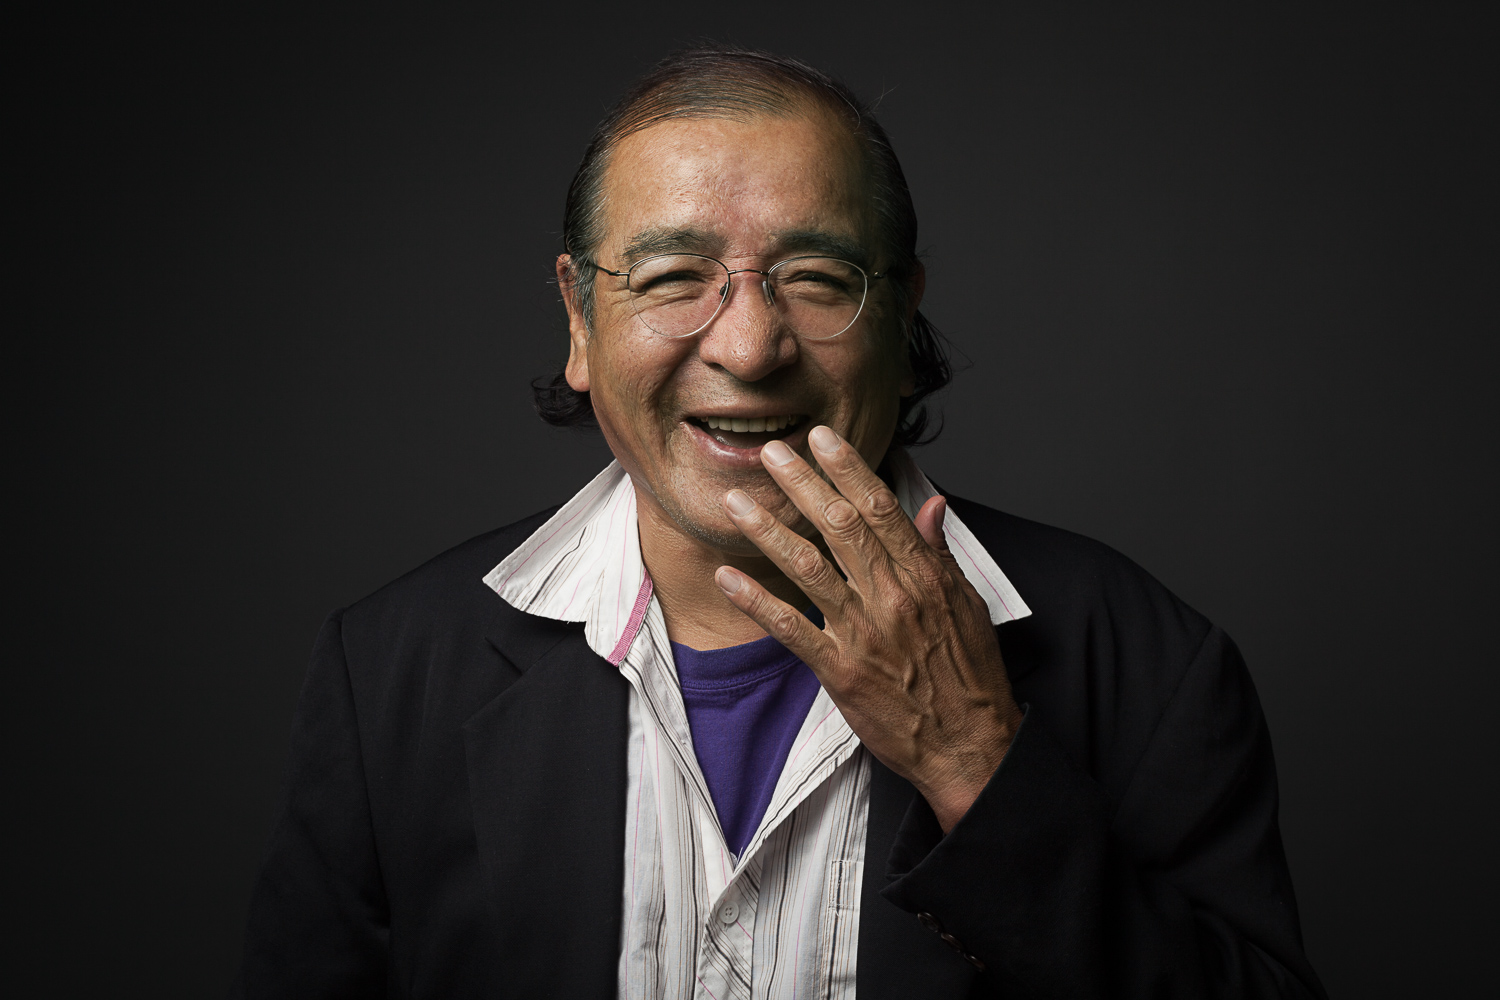 Tomson Highway laughing (portrait by Sean Howard)